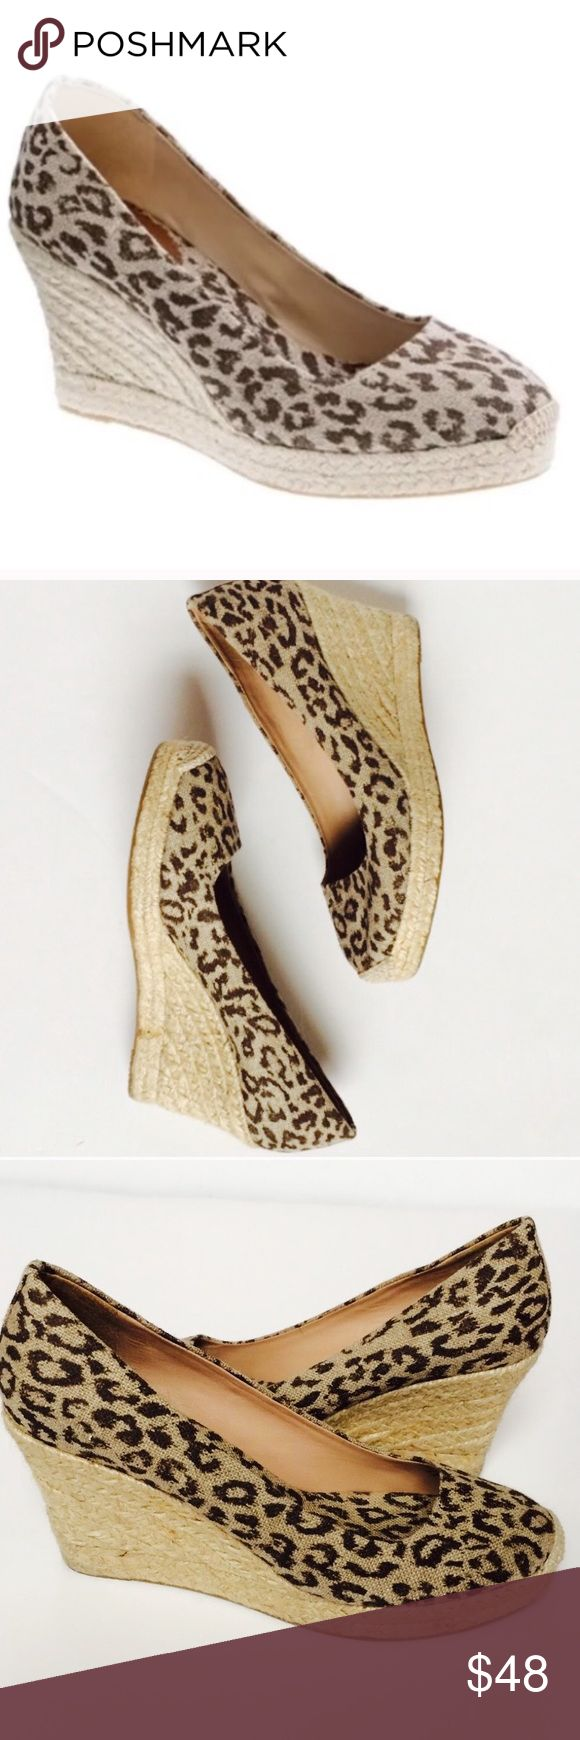 """J. Crew Leopard Espadrilles Wedges 10 J. Crew, not factory. Excellent condition - no flaws. Worn just a few times. Canvas upper with leather interior lining. Heel height of 3"""". Size 10. J. Crew Shoes Wedges"""